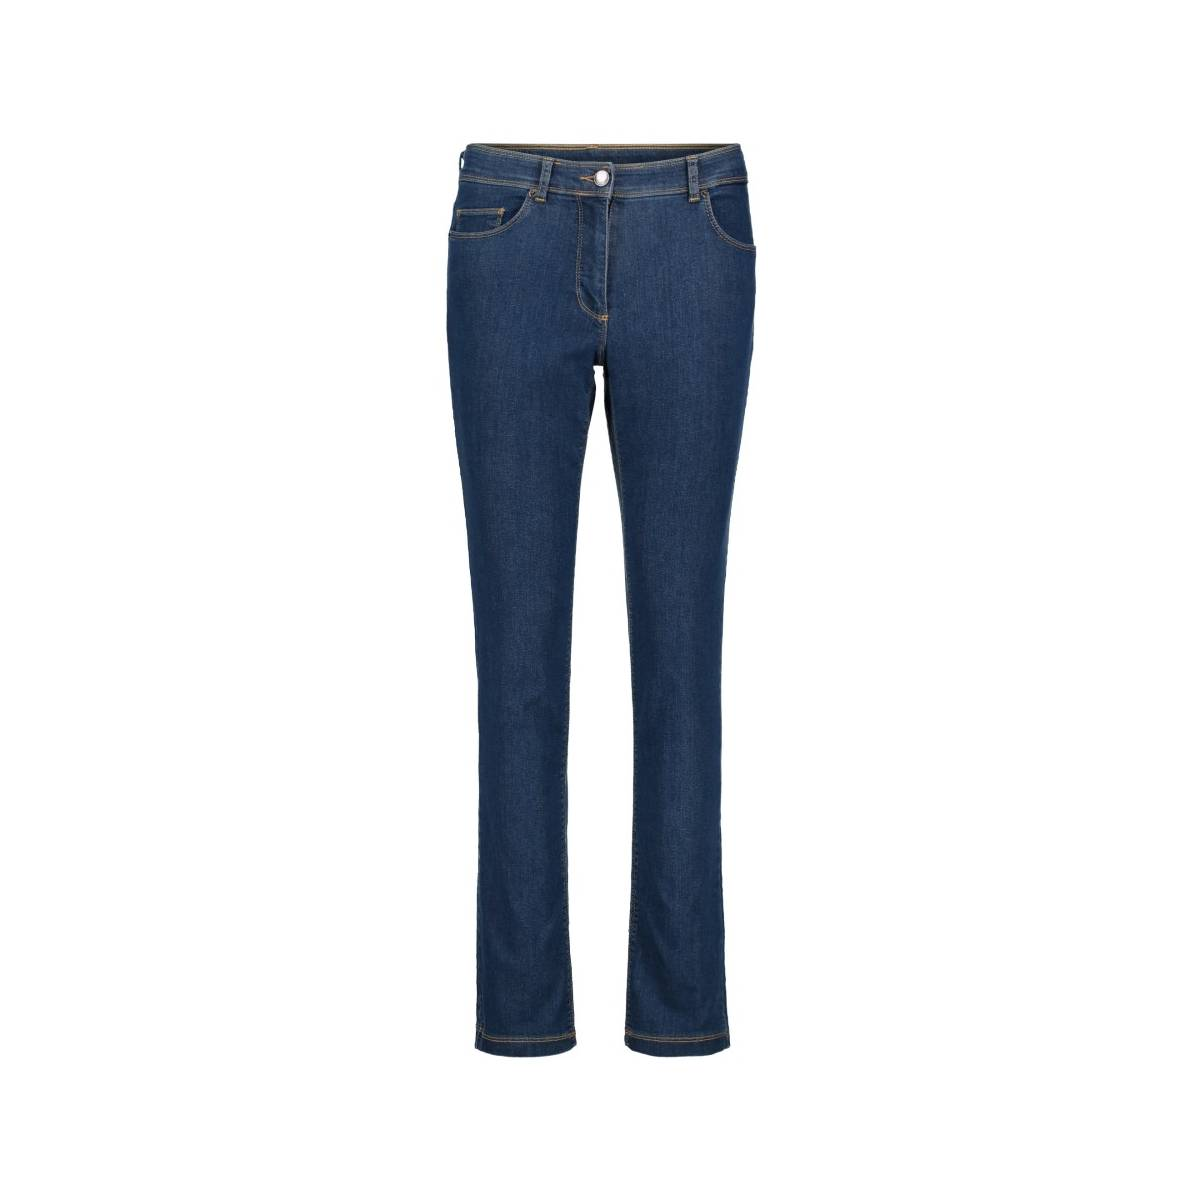 BETTY BARCLAY  broeken jeans -  model 39601806 - Dameskleding broeken jeans